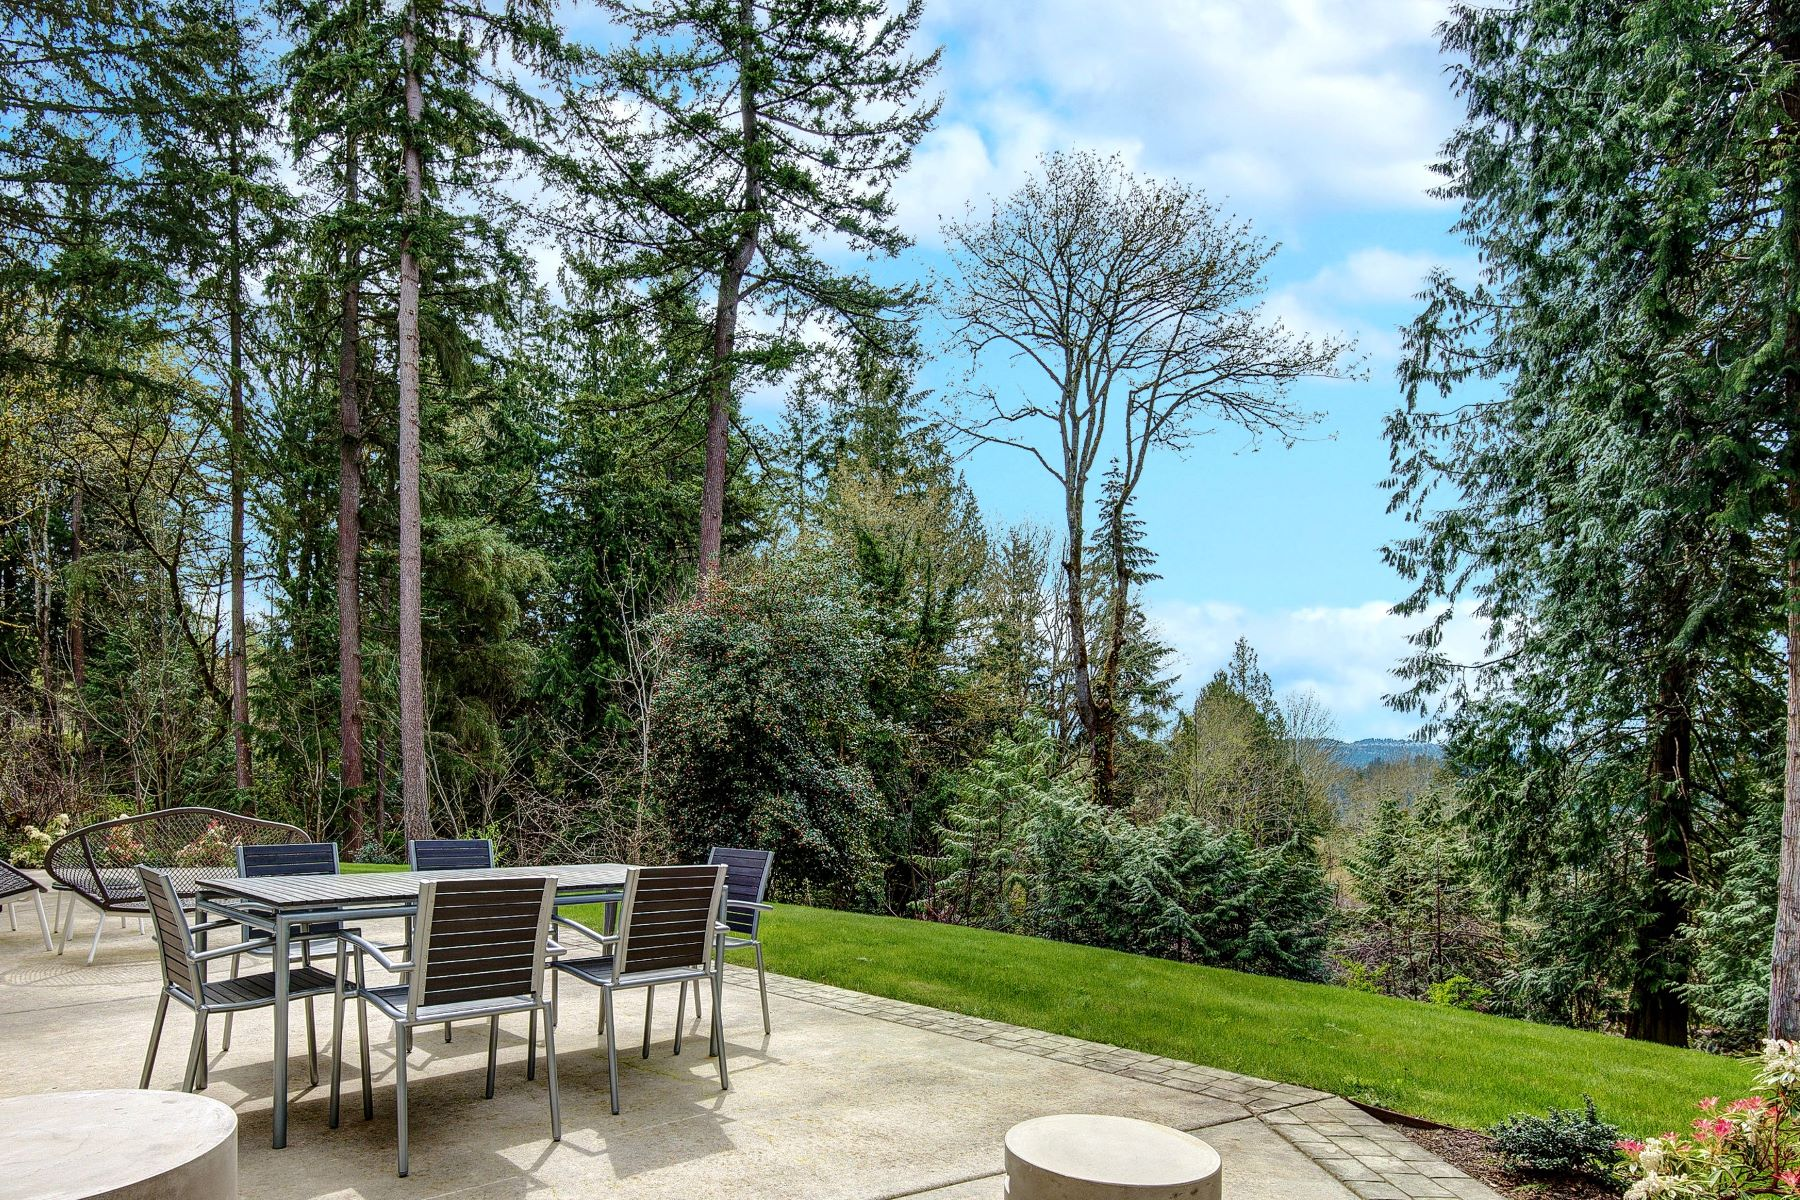 Additional photo for property listing at Tuscan Elegance in Sammamish 4121 198th Court NE Sammamish, Washington 98074 United States